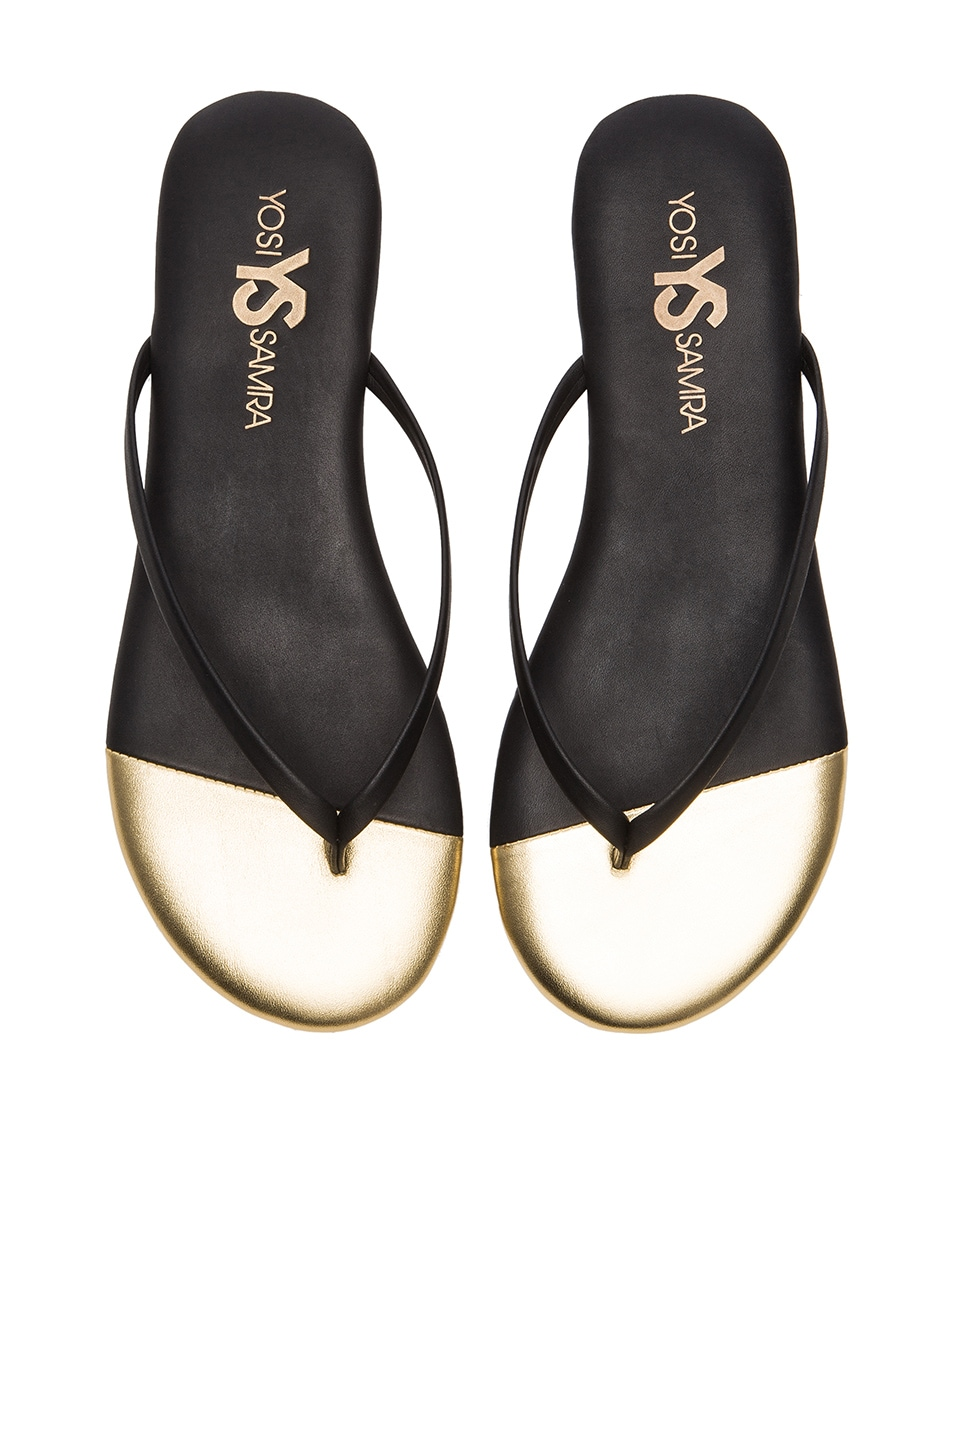 Yosi Samra Roee Metallic Flip Flop in Black & Pure Gold